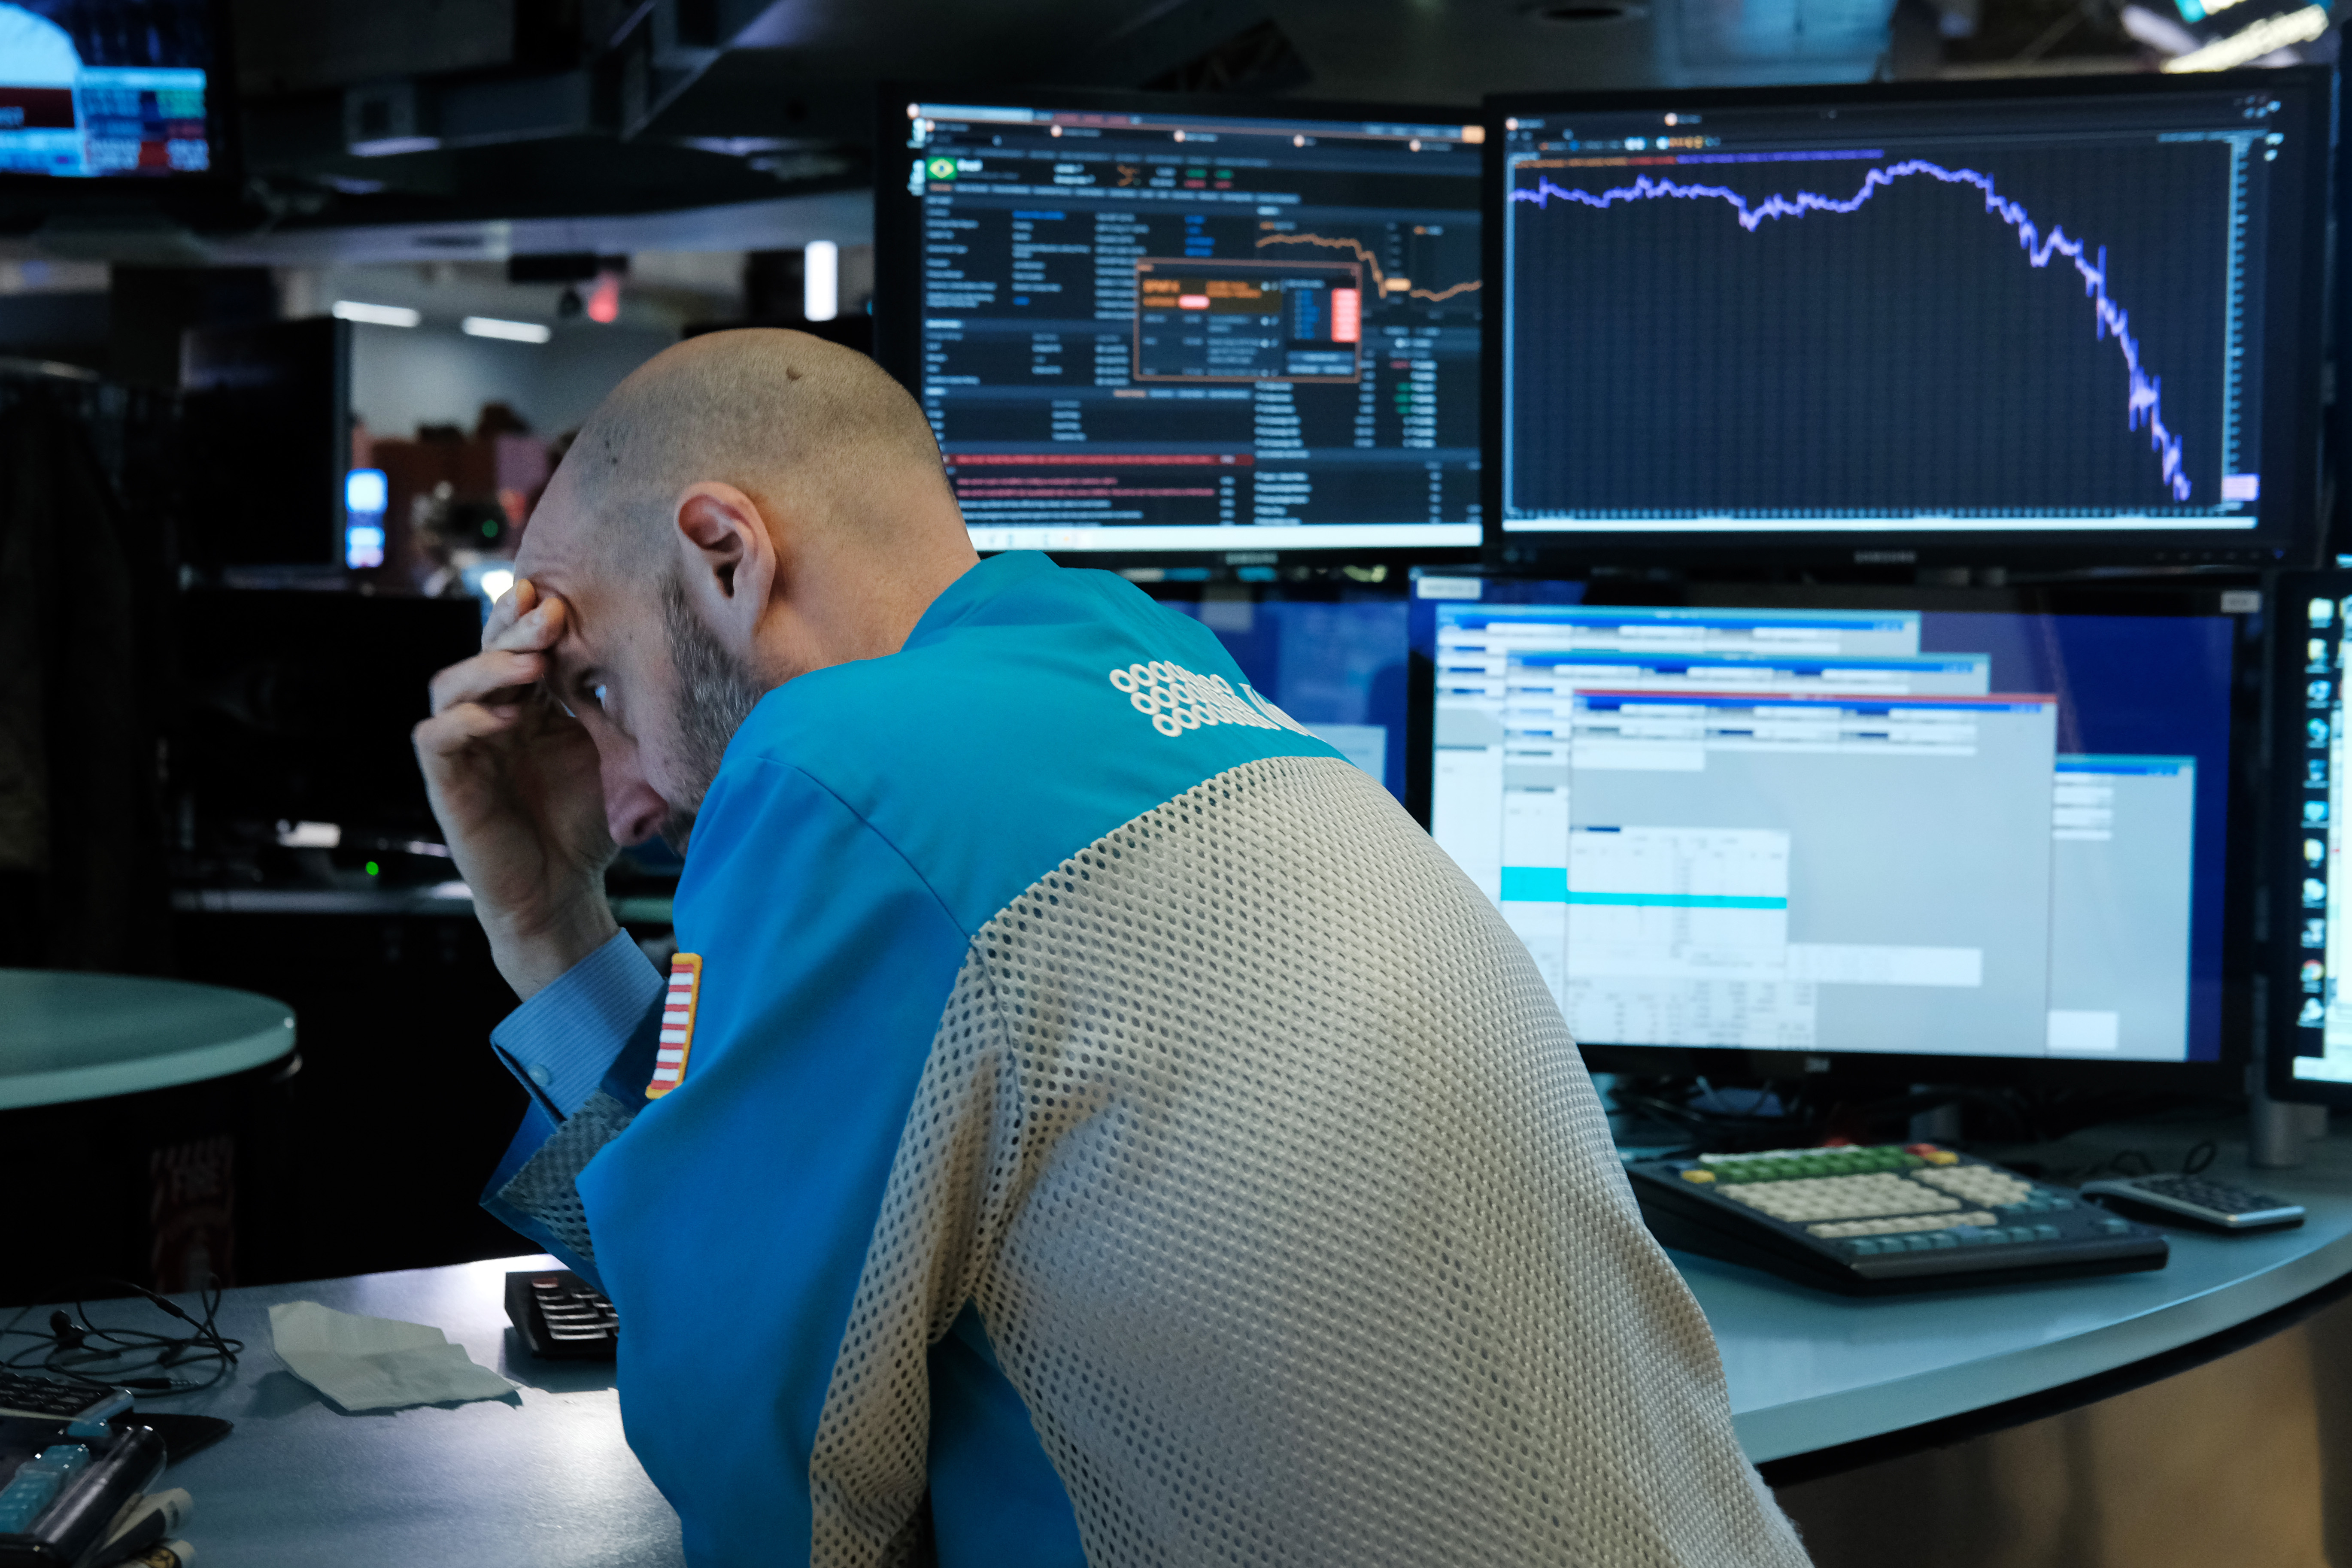 NYSE will temporarily close its trading